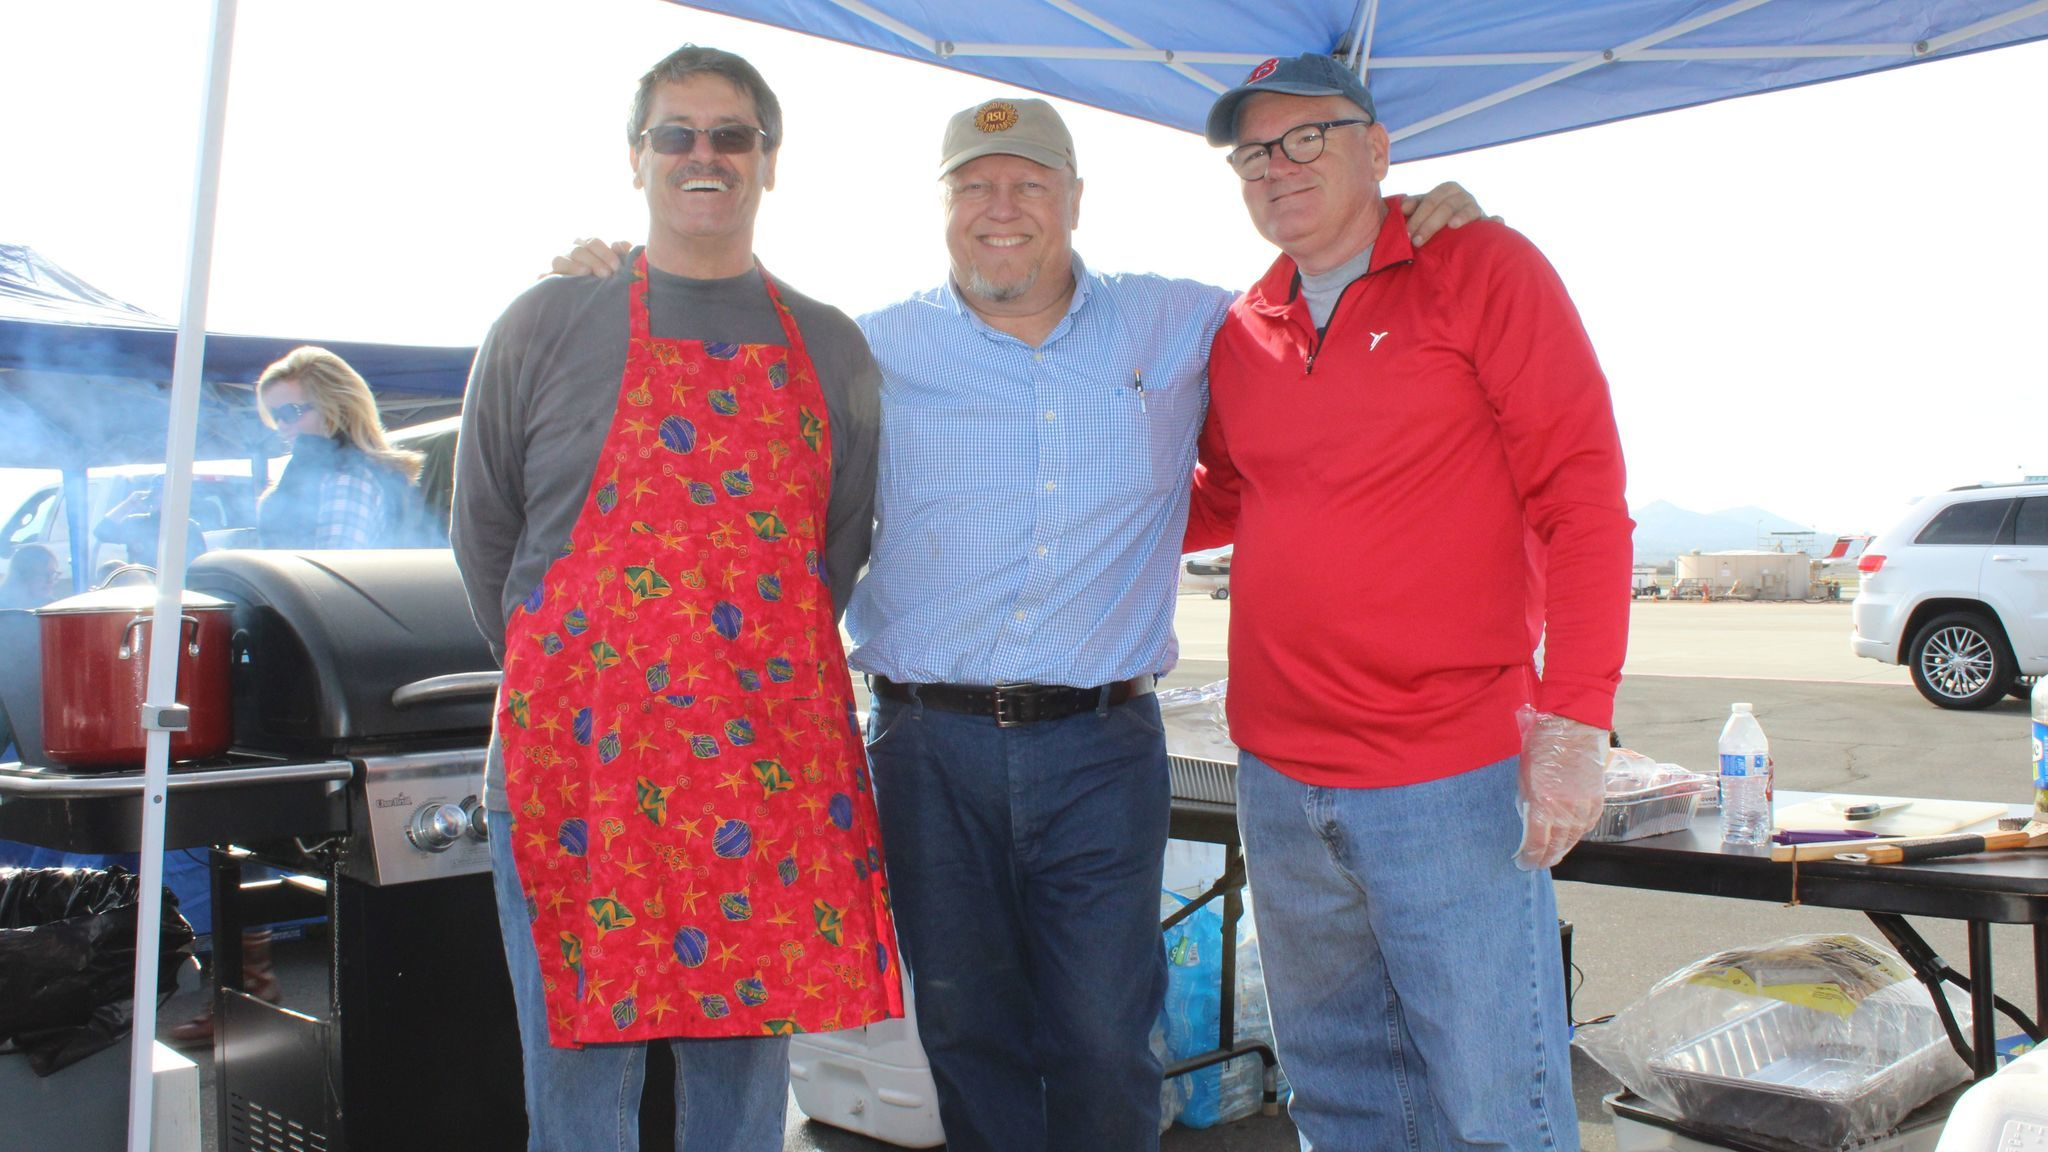 Martin Wood, center, stands by the food station with Joe Patrao and Frank Provost.